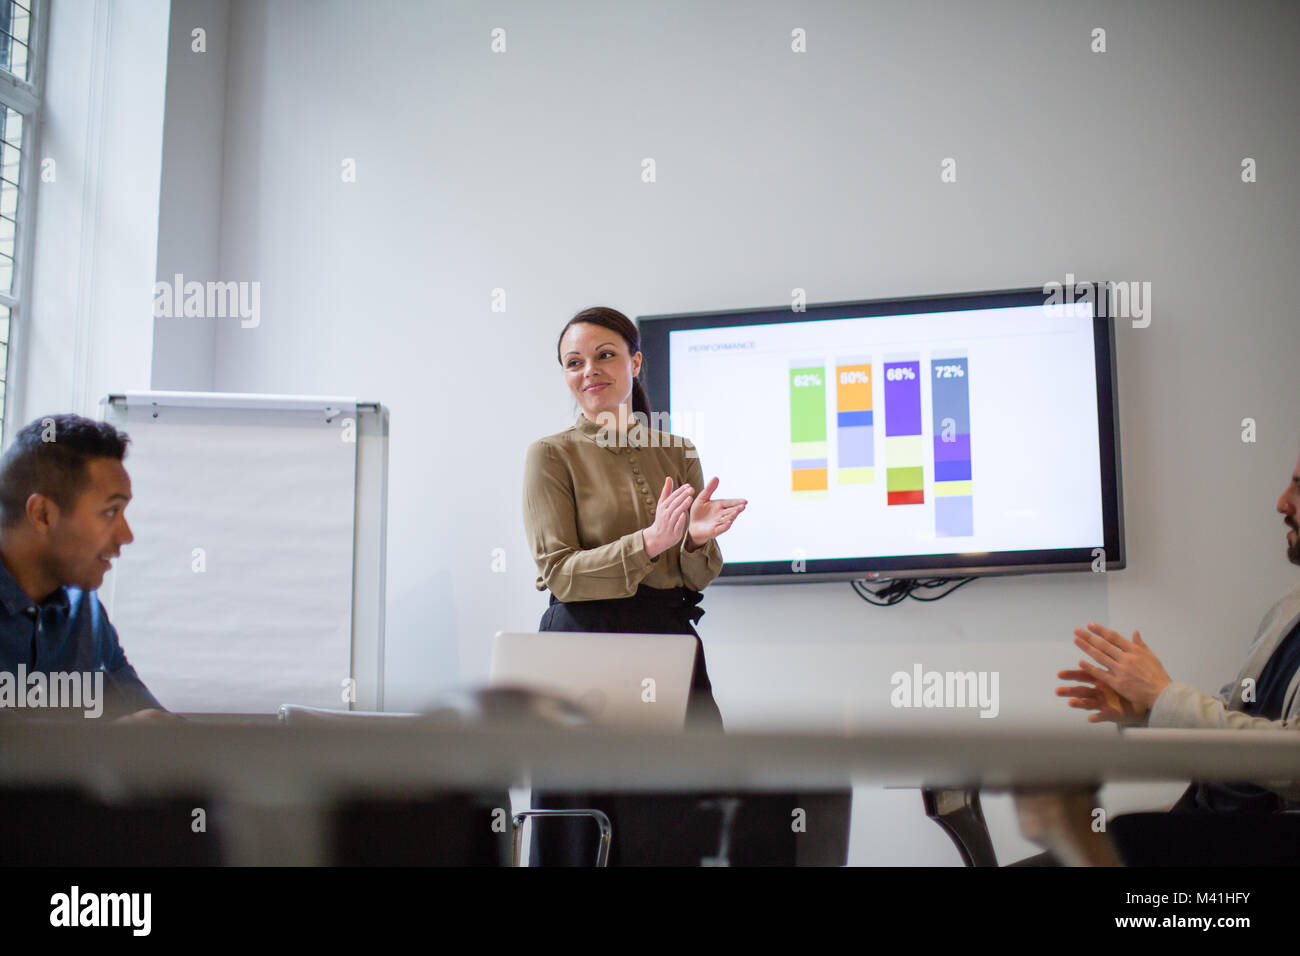 Female business executive applauding team performance - Stock Image